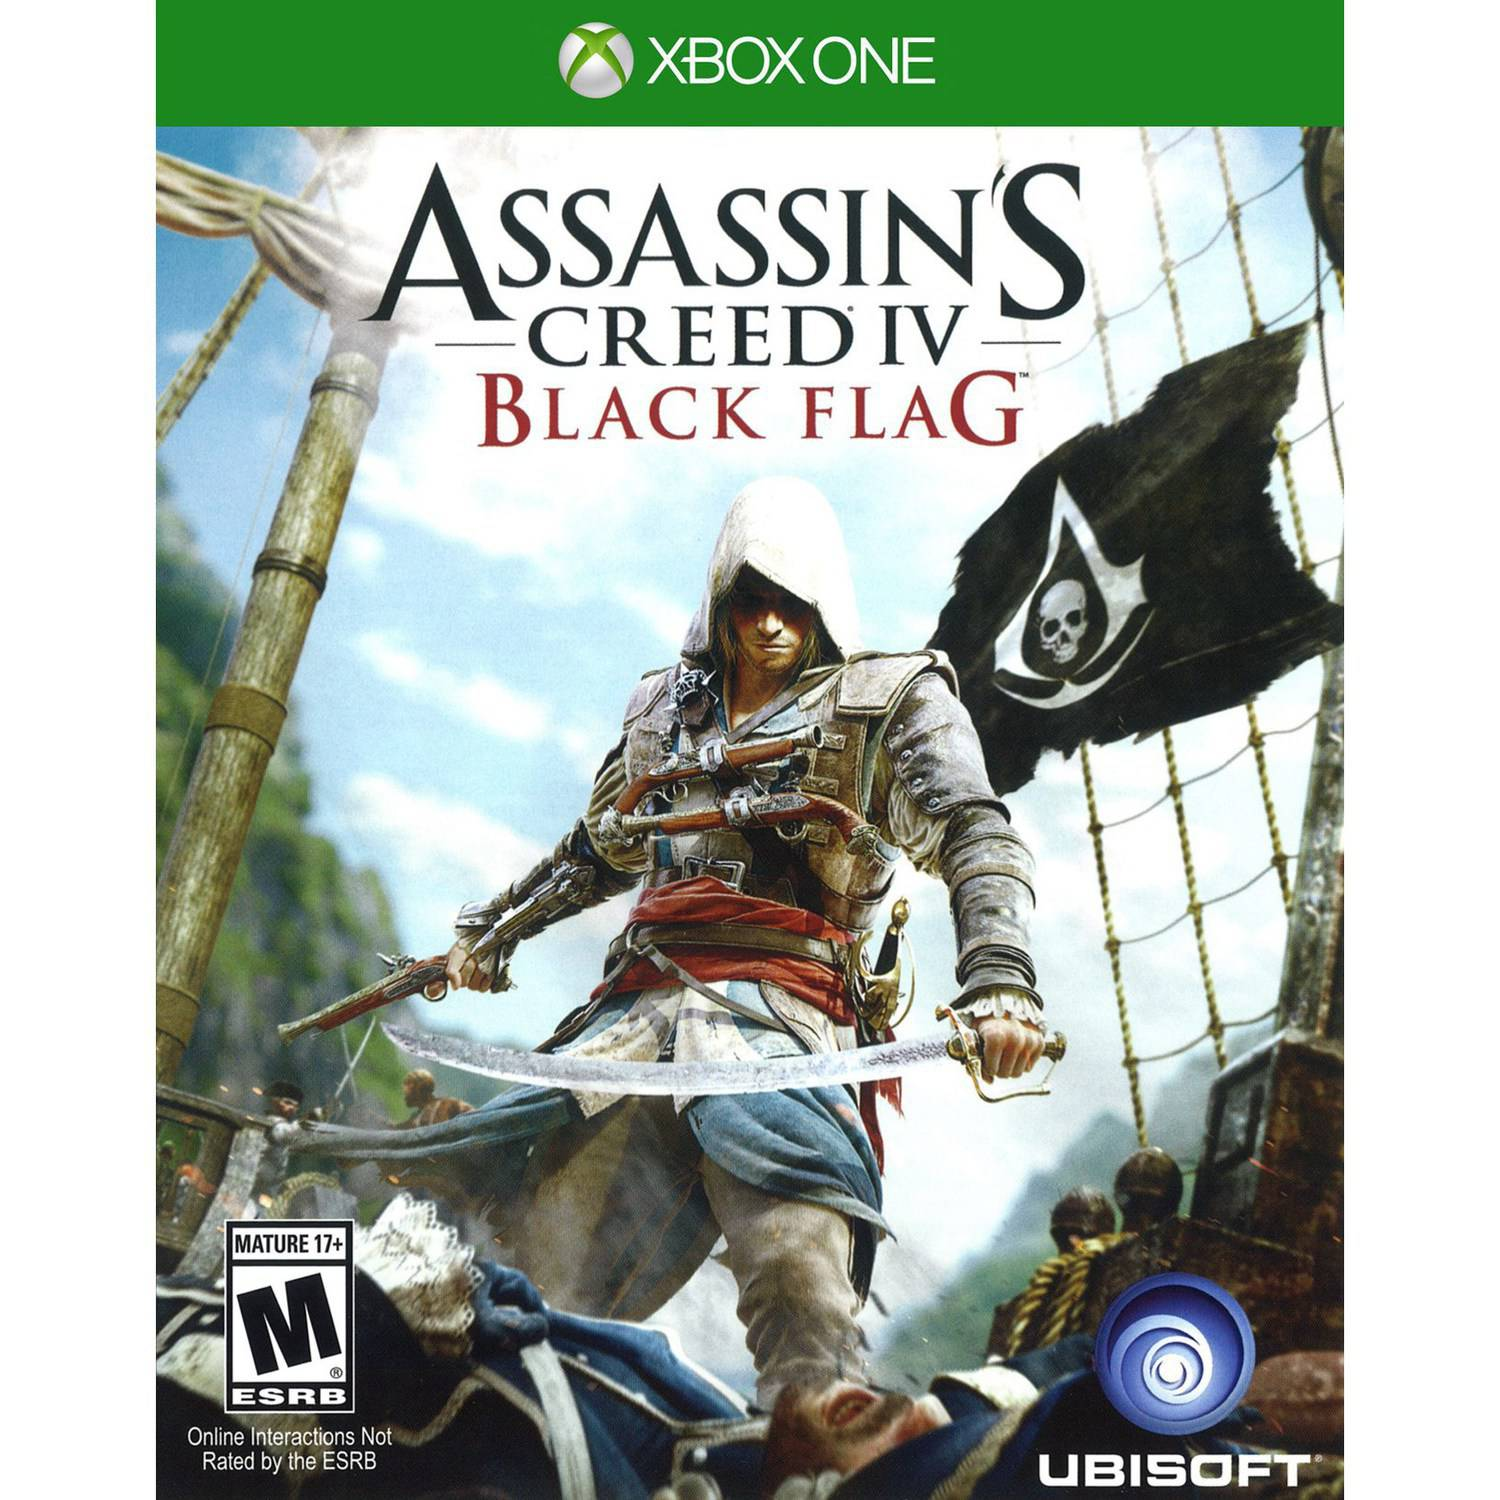 Assassin's Creed IV: Black Flag, Ubisoft, Xbox One, 008888538110